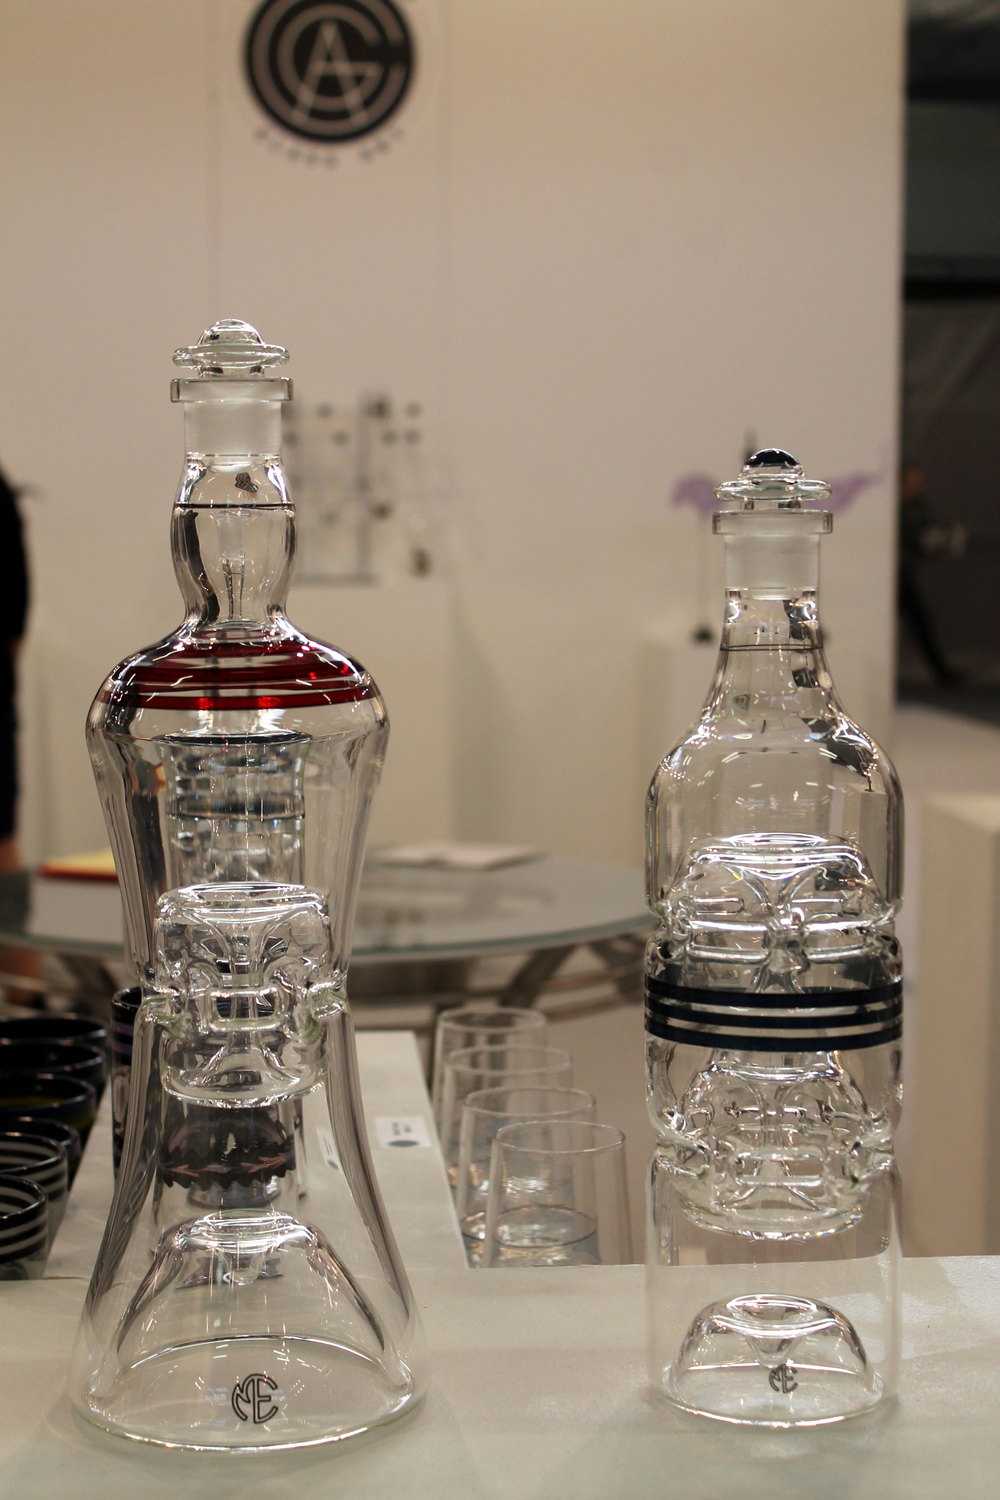 I was quite taken by the beauty of these glass decanters by Chesterfield Glass Art.